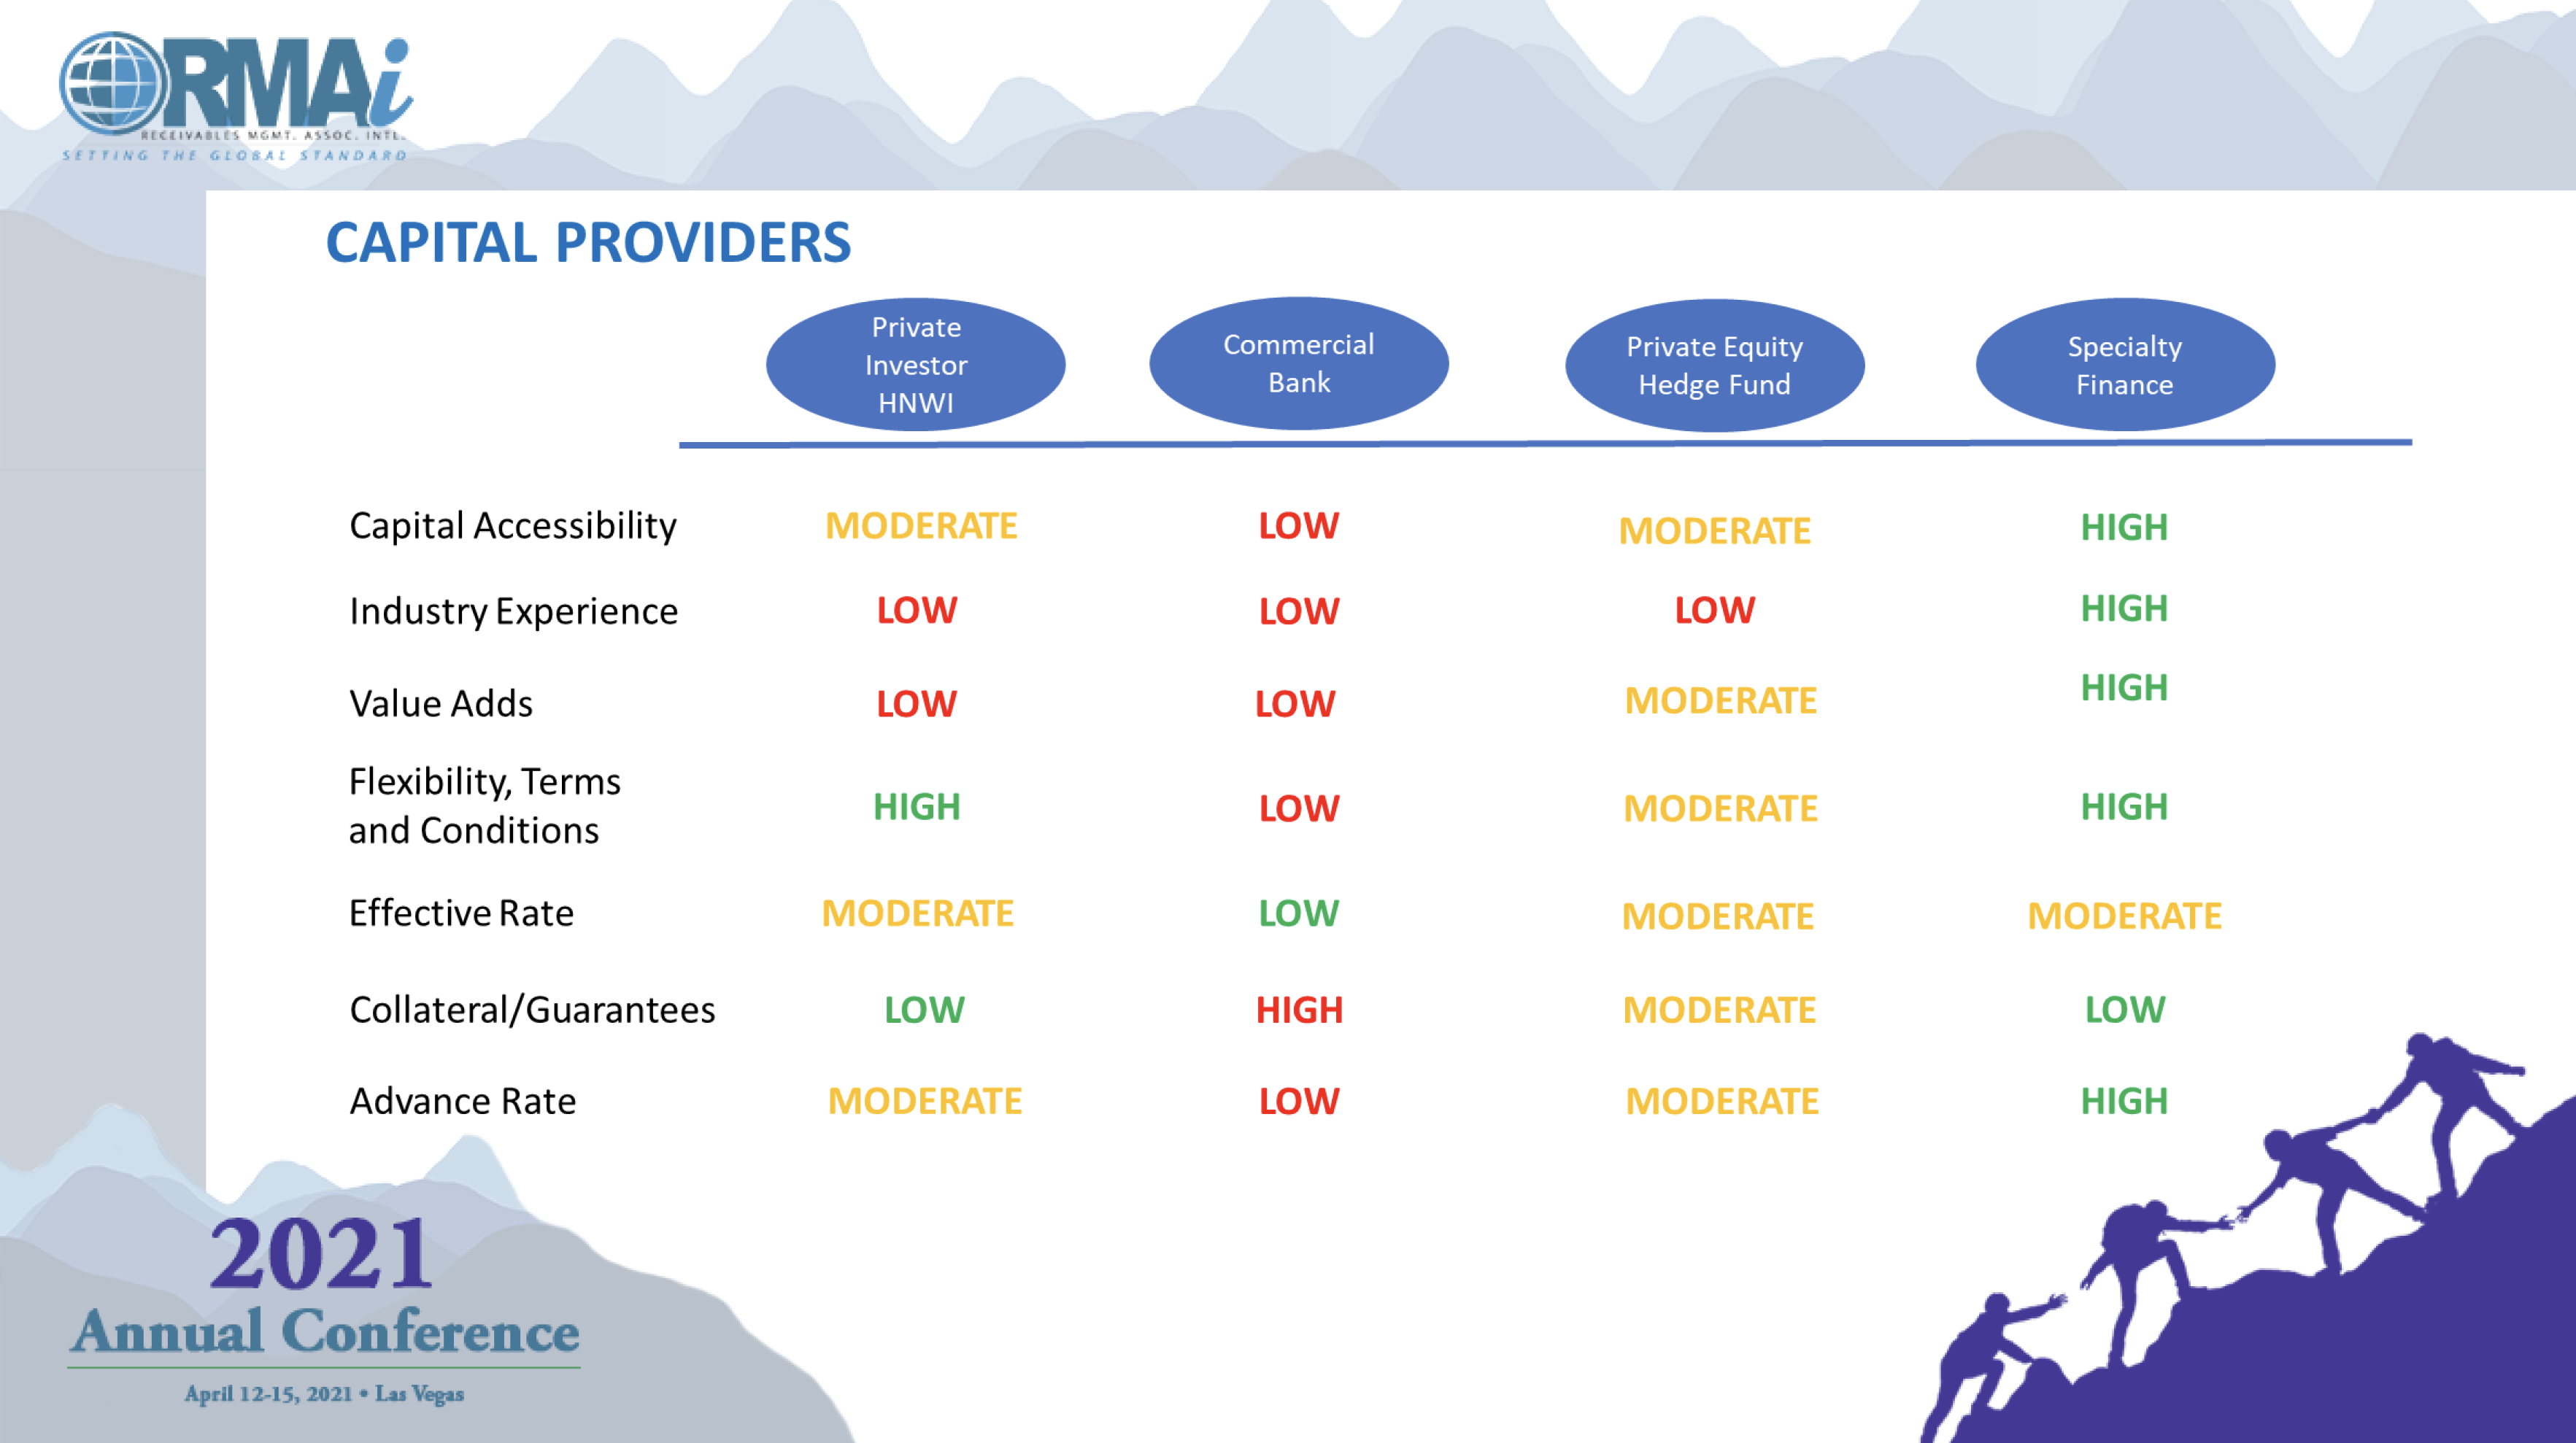 Types of Capital Providers